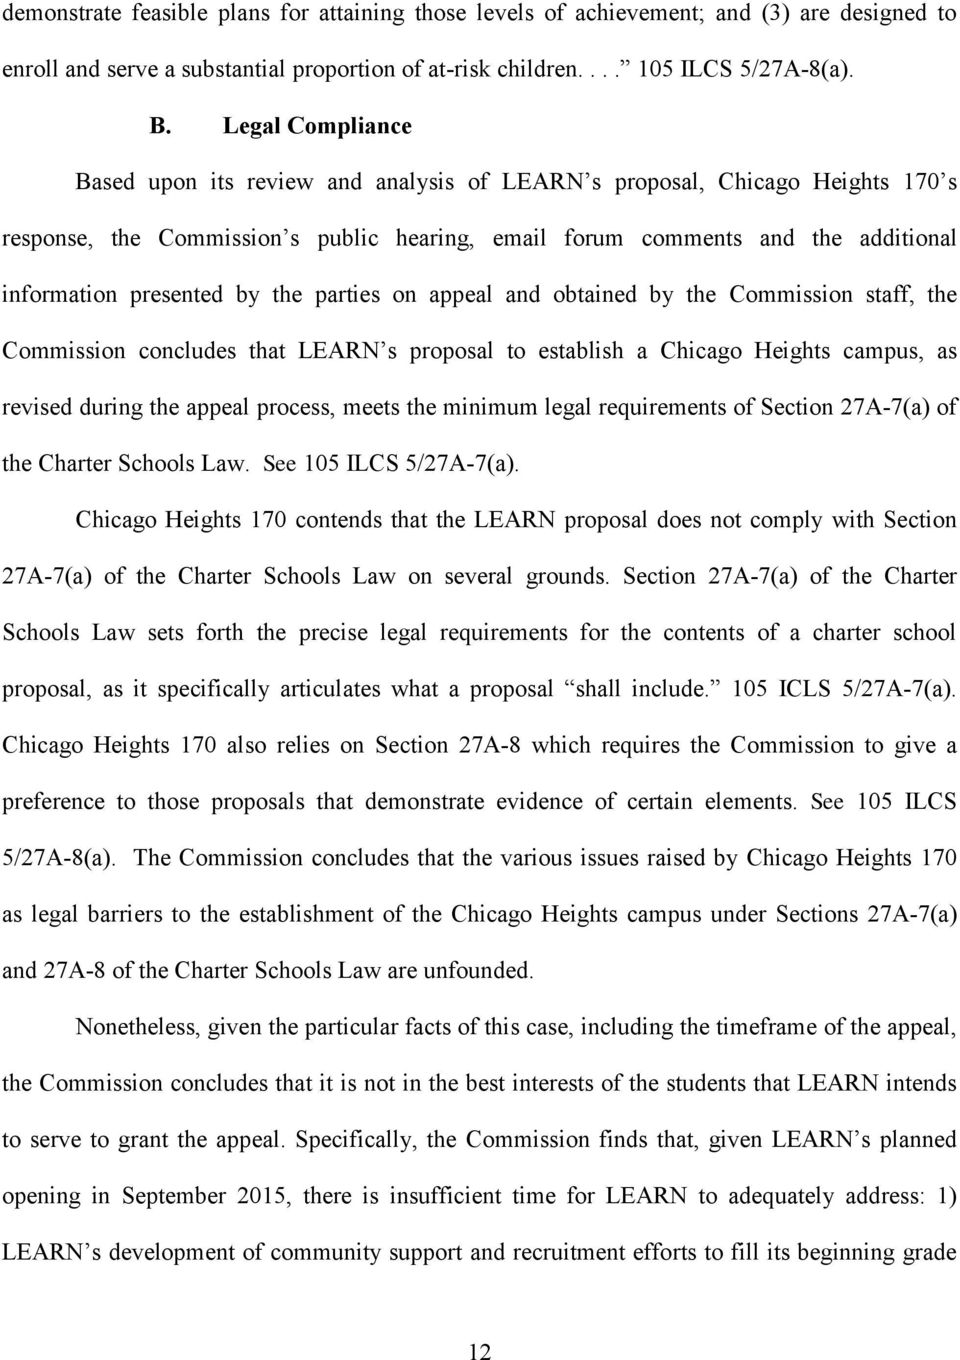 by the parties on appeal and obtained by the Commission staff, the Commission concludes that LEARN s proposal to establish a Chicago Heights campus, as revised during the appeal process, meets the